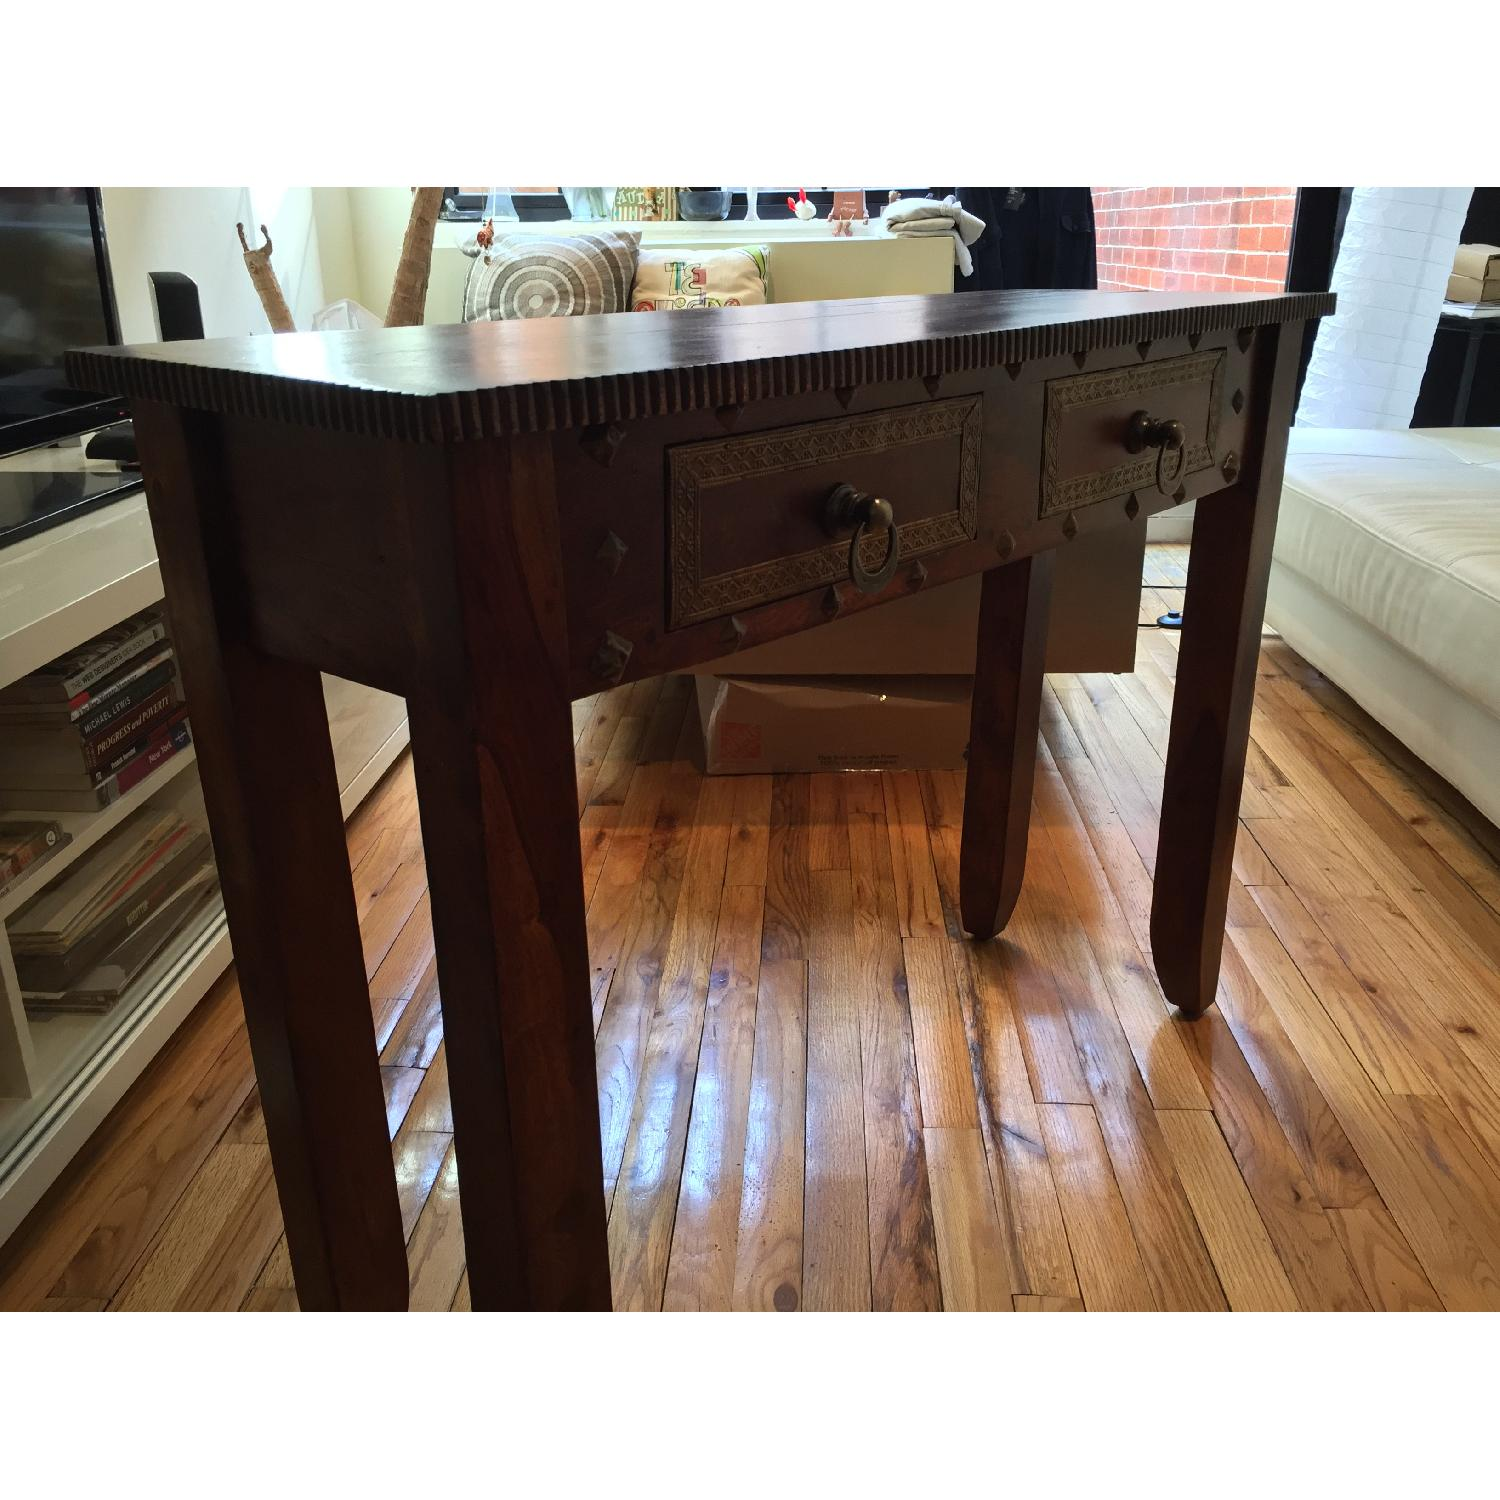 Pier 1 Vintage Heera Indian Handcrafted Console Table - image-3